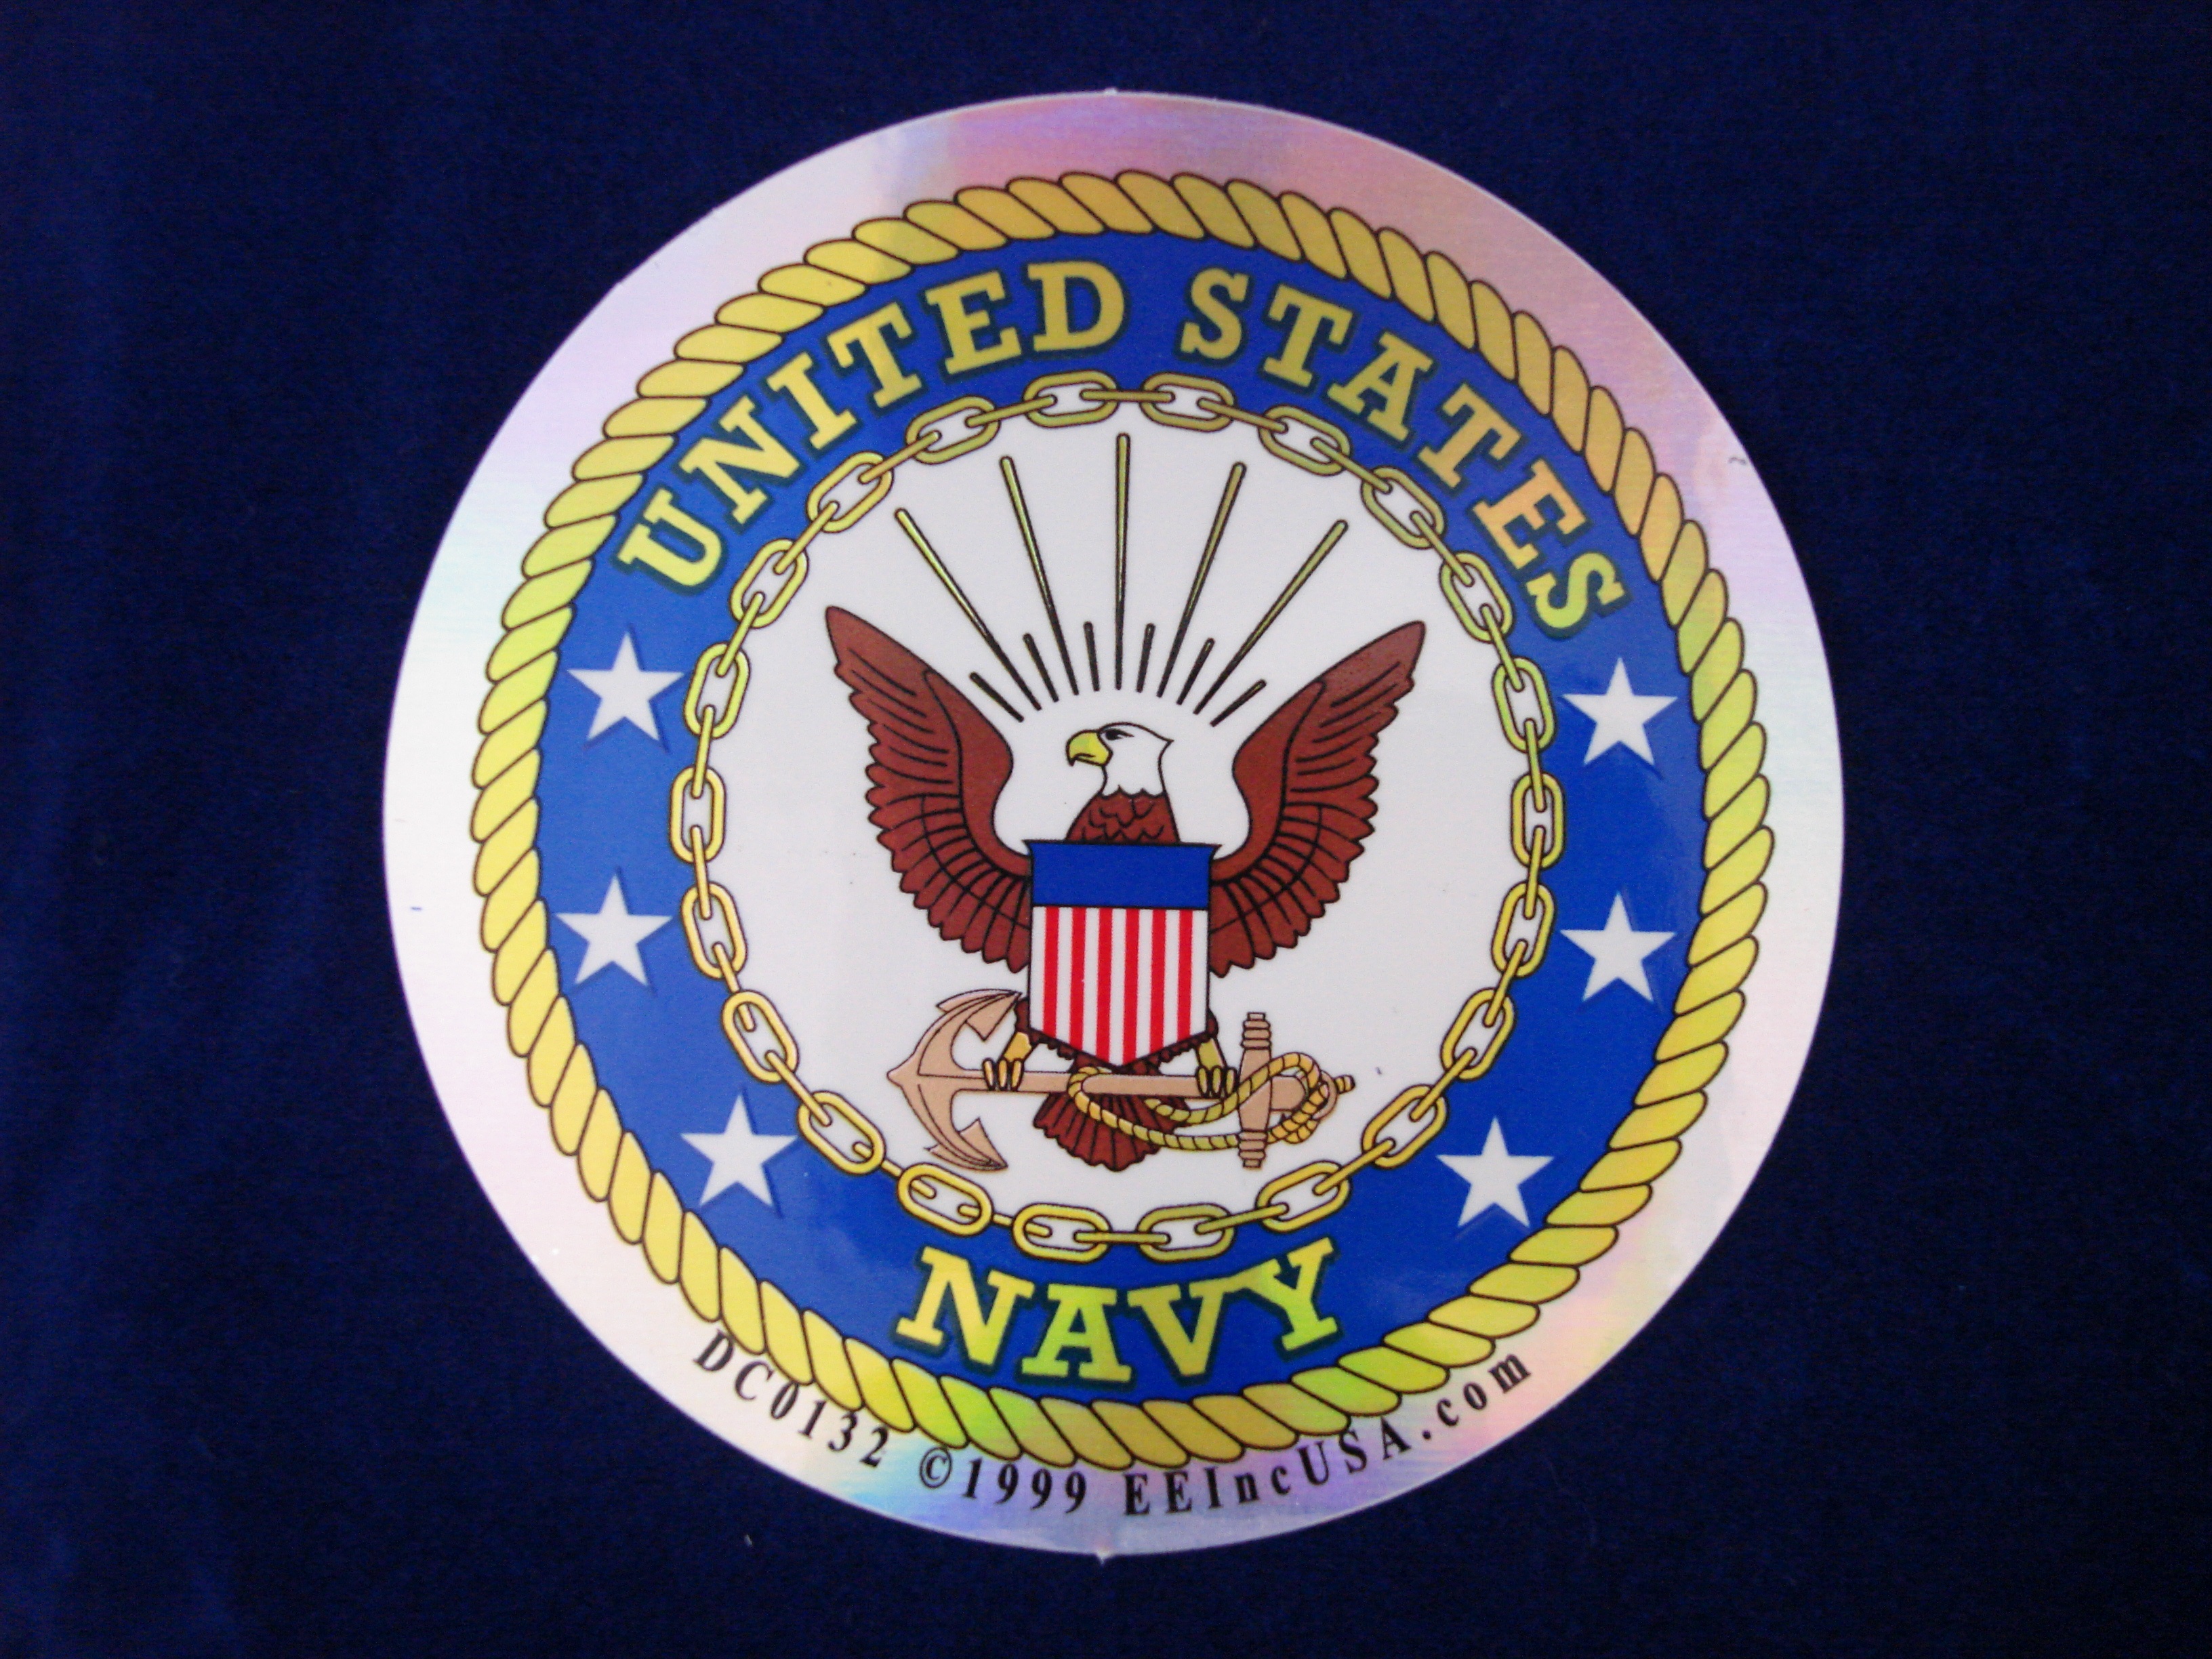 Navy Logo Wallpaper Picture Image and Wallpaper Download this Navy 3264x2448